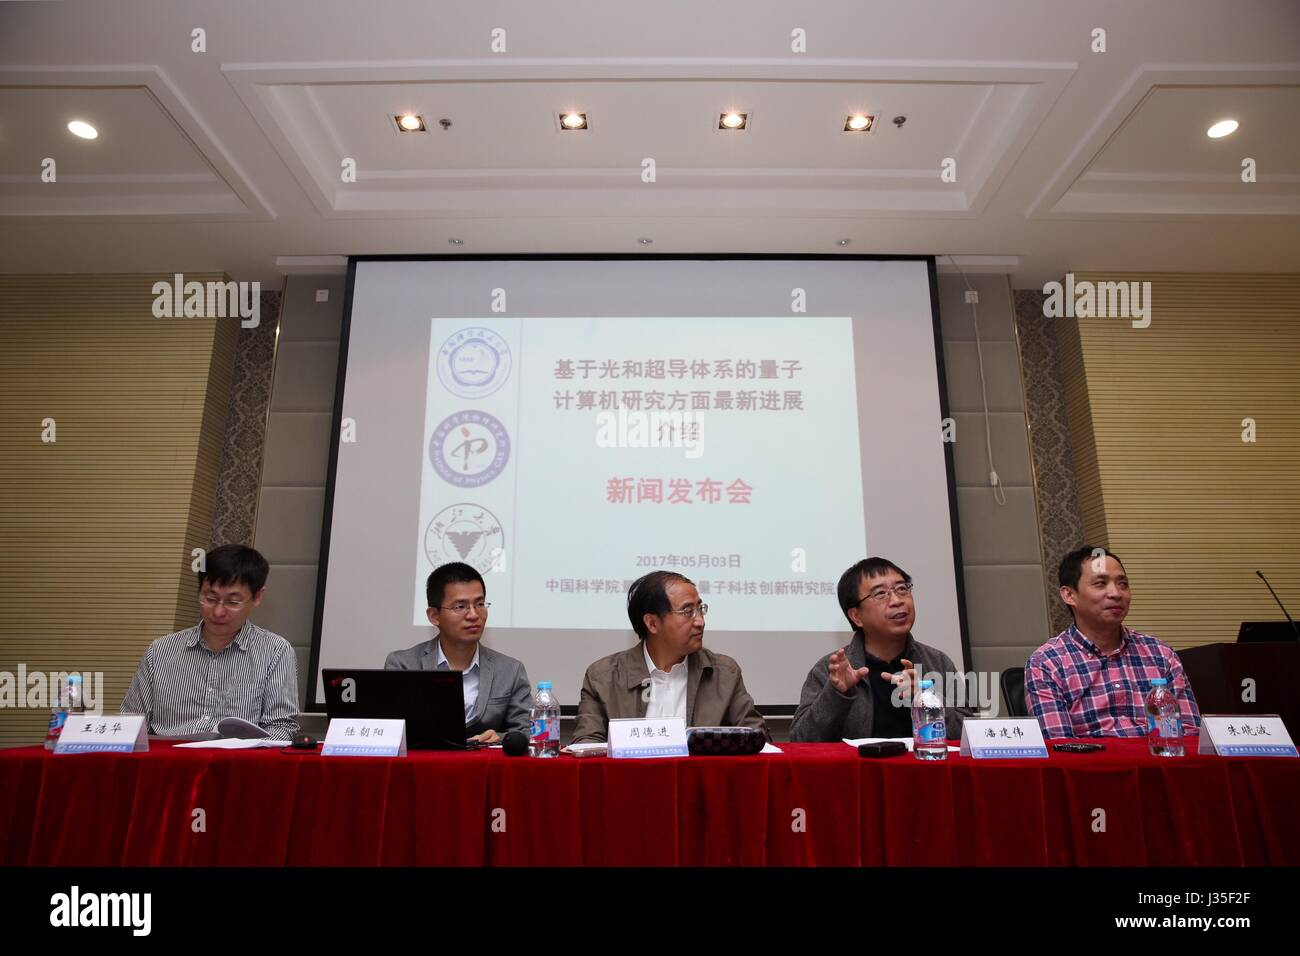 Shanghai, China. 3rd May, 2017. Chinese leading quantum physicist Pan Jianwei (2nd R), an academician of the Chinese - Stock Image